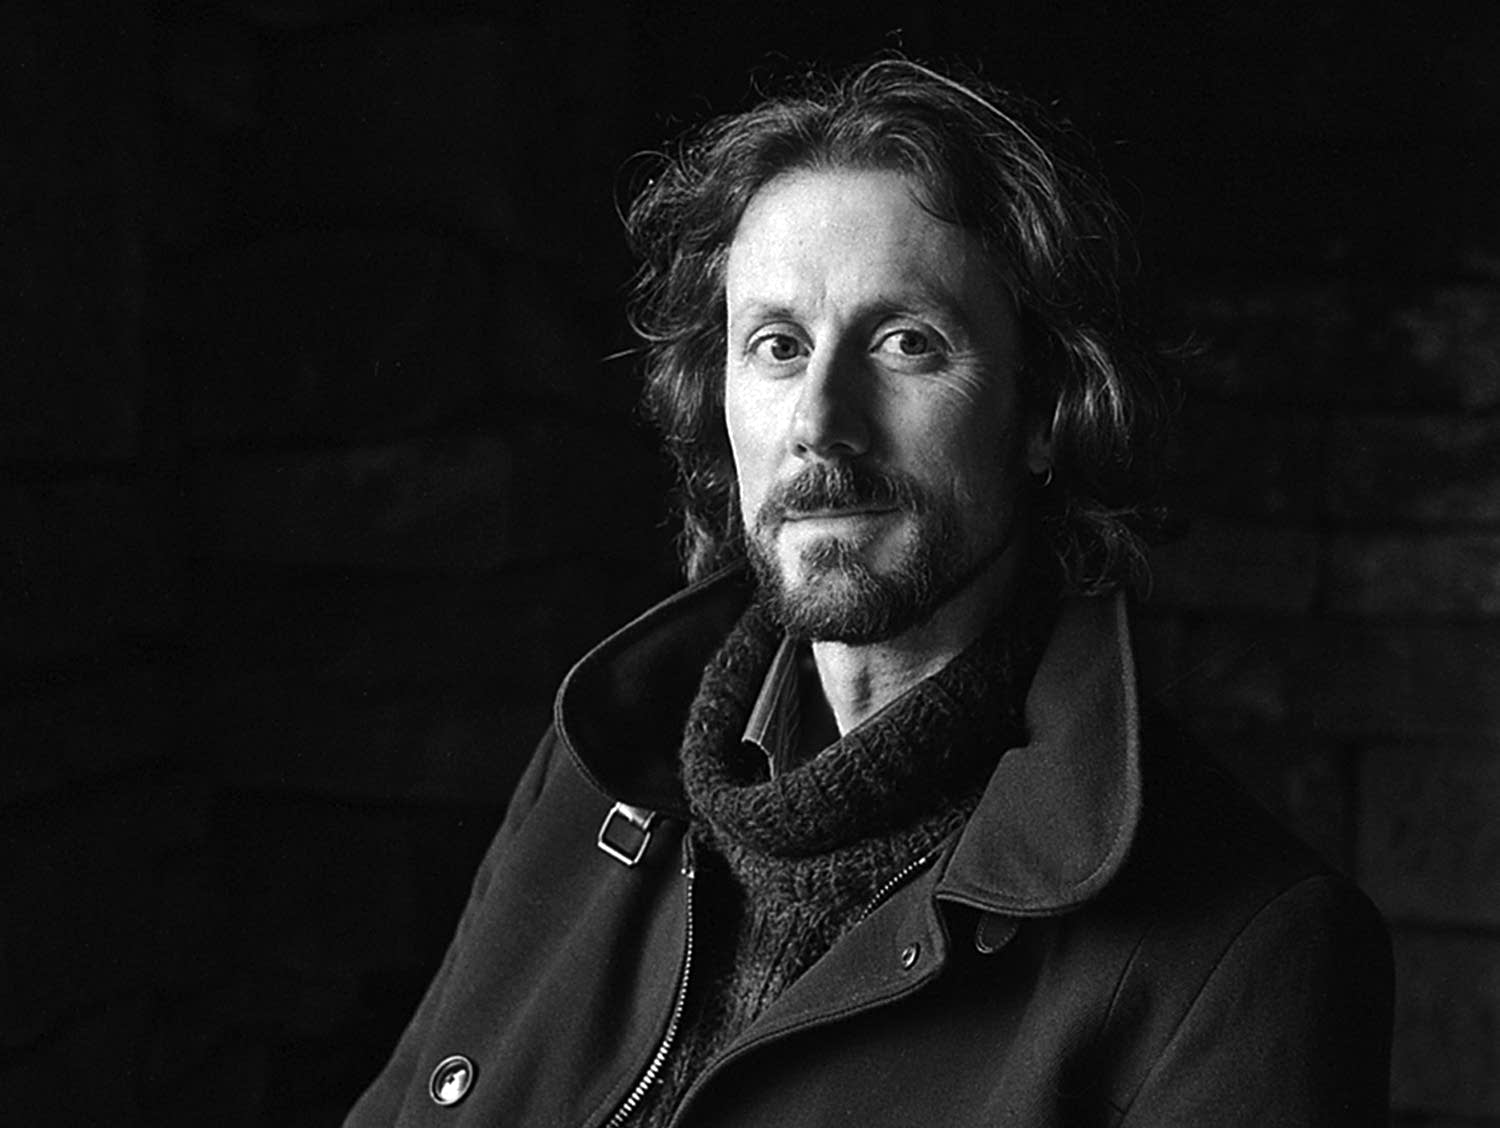 Author Paul Kingsnorth